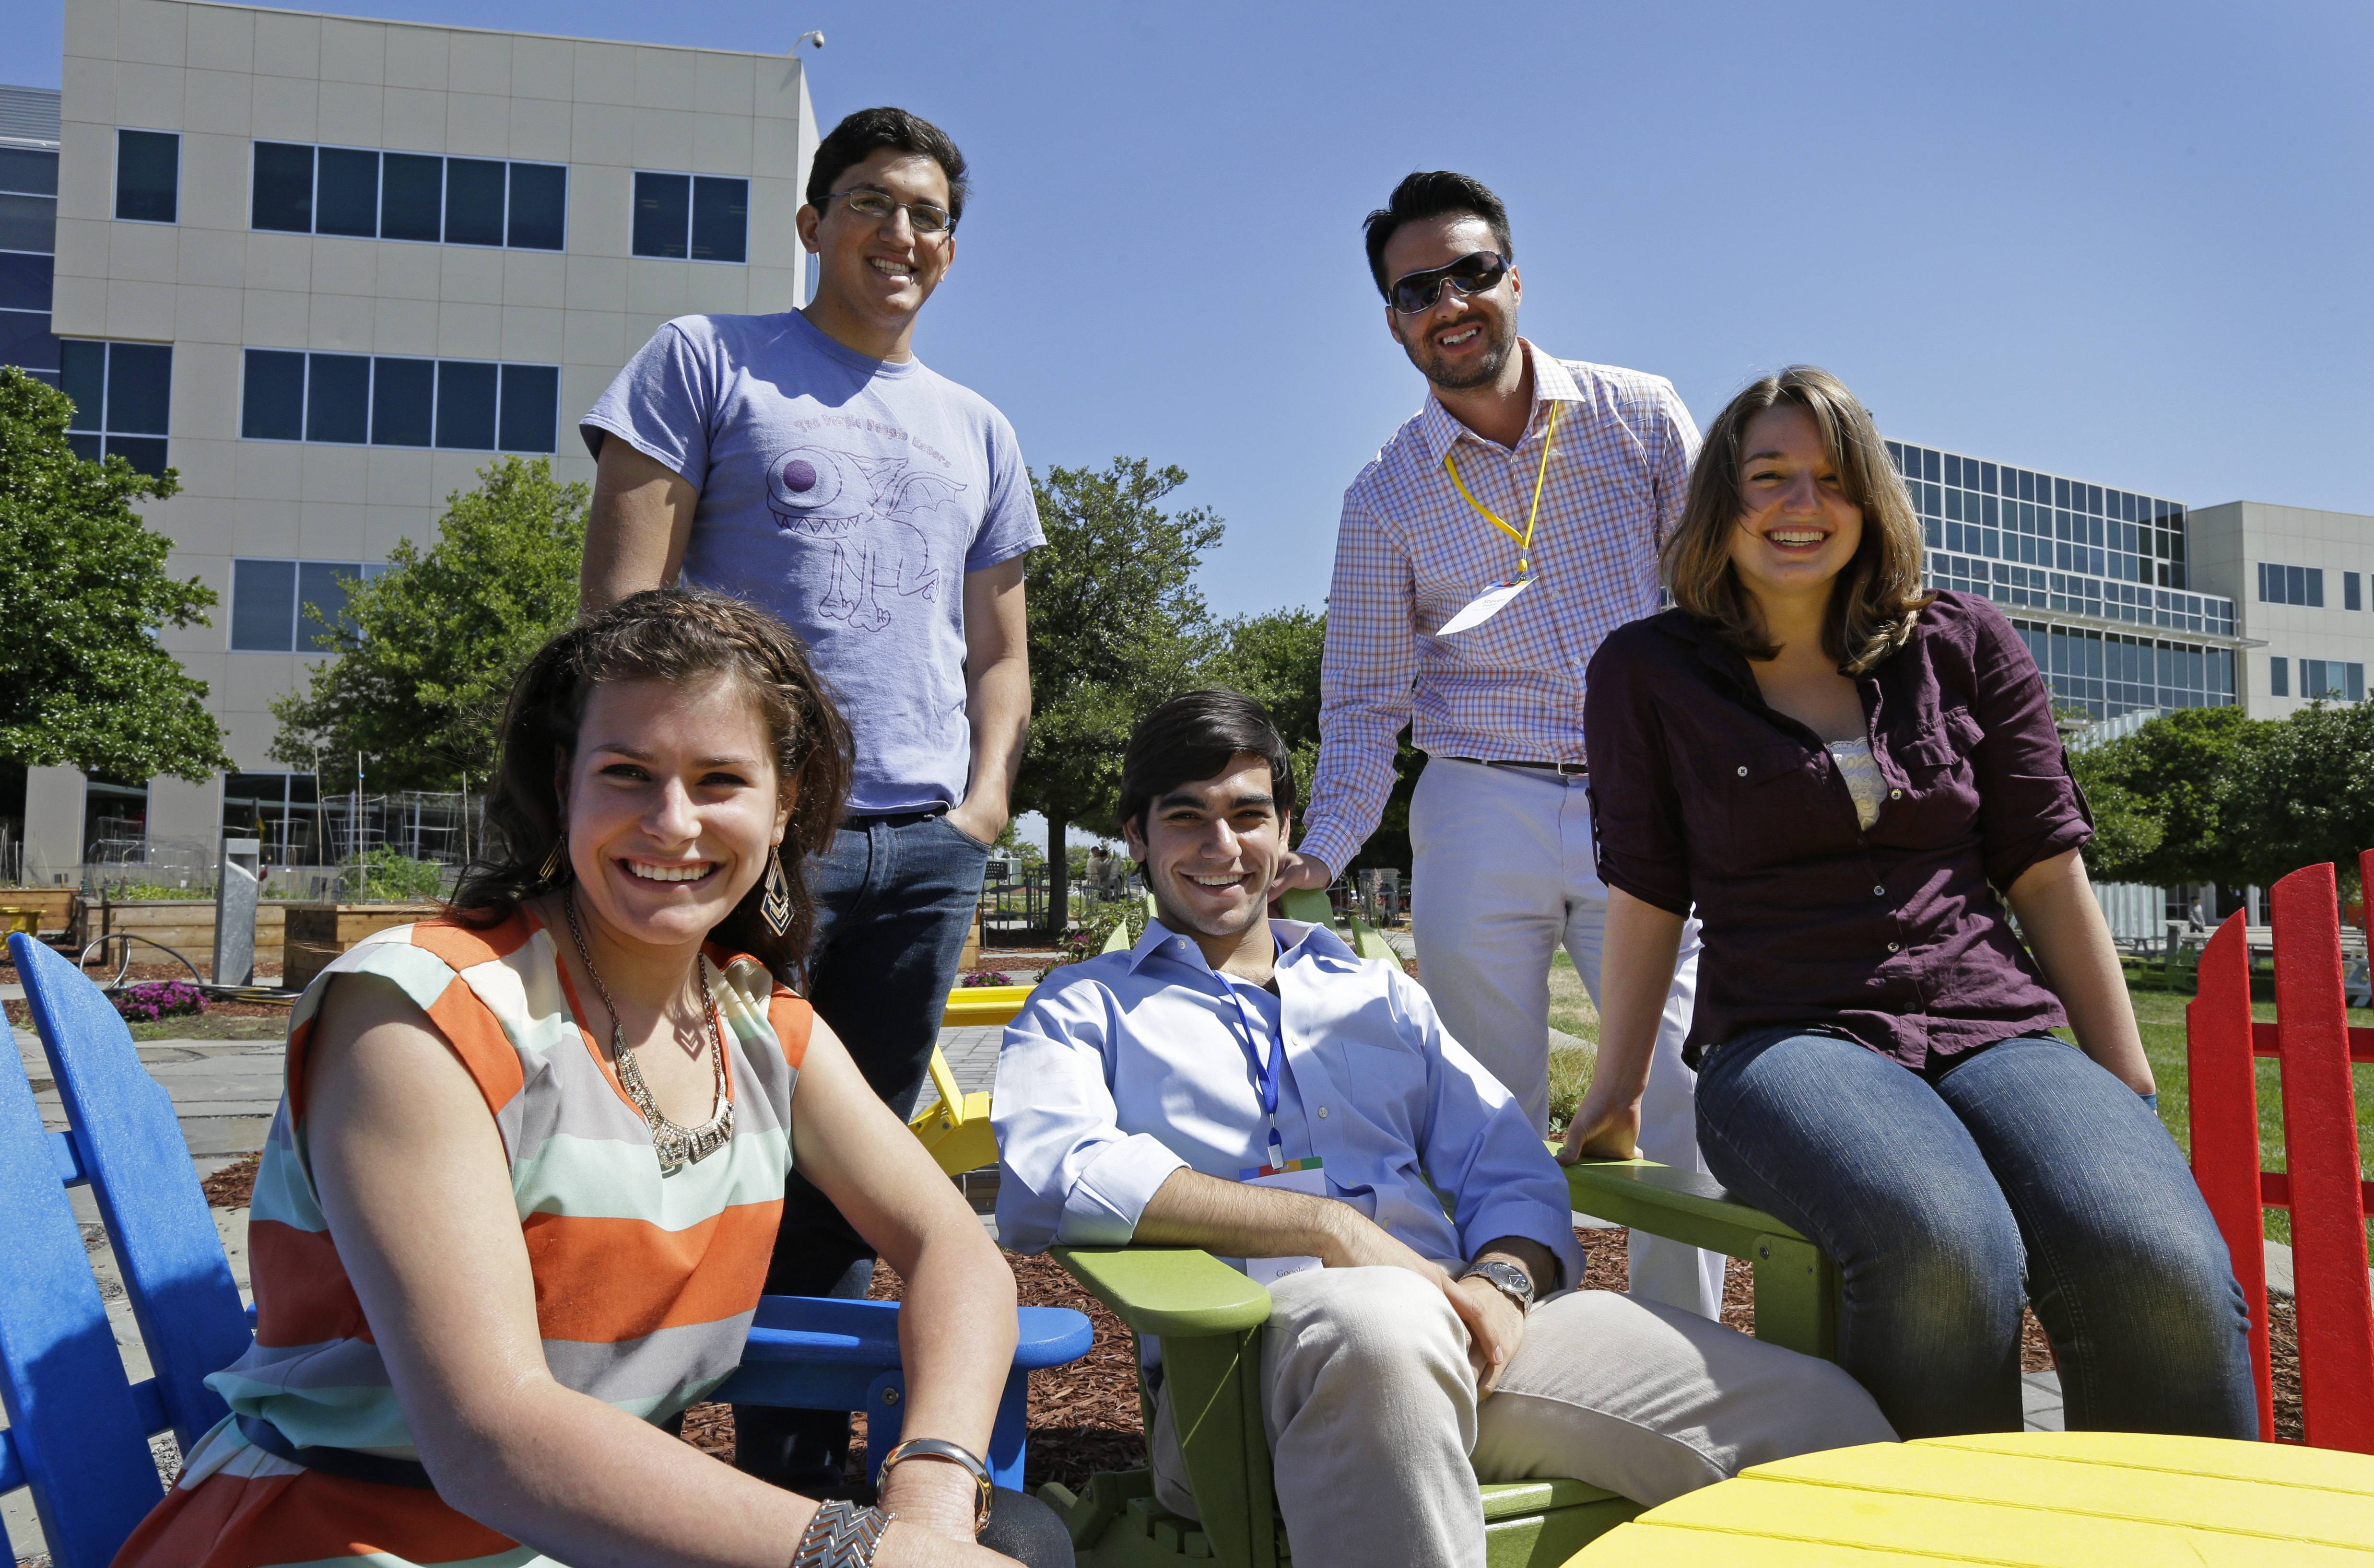 Google interns, from left, Rita DeRaedt, Alfredo Salinas, Alex Rodrigues, Steve Weddler, and Lizzy Burl on the Google campus in Mountain View, Calif.